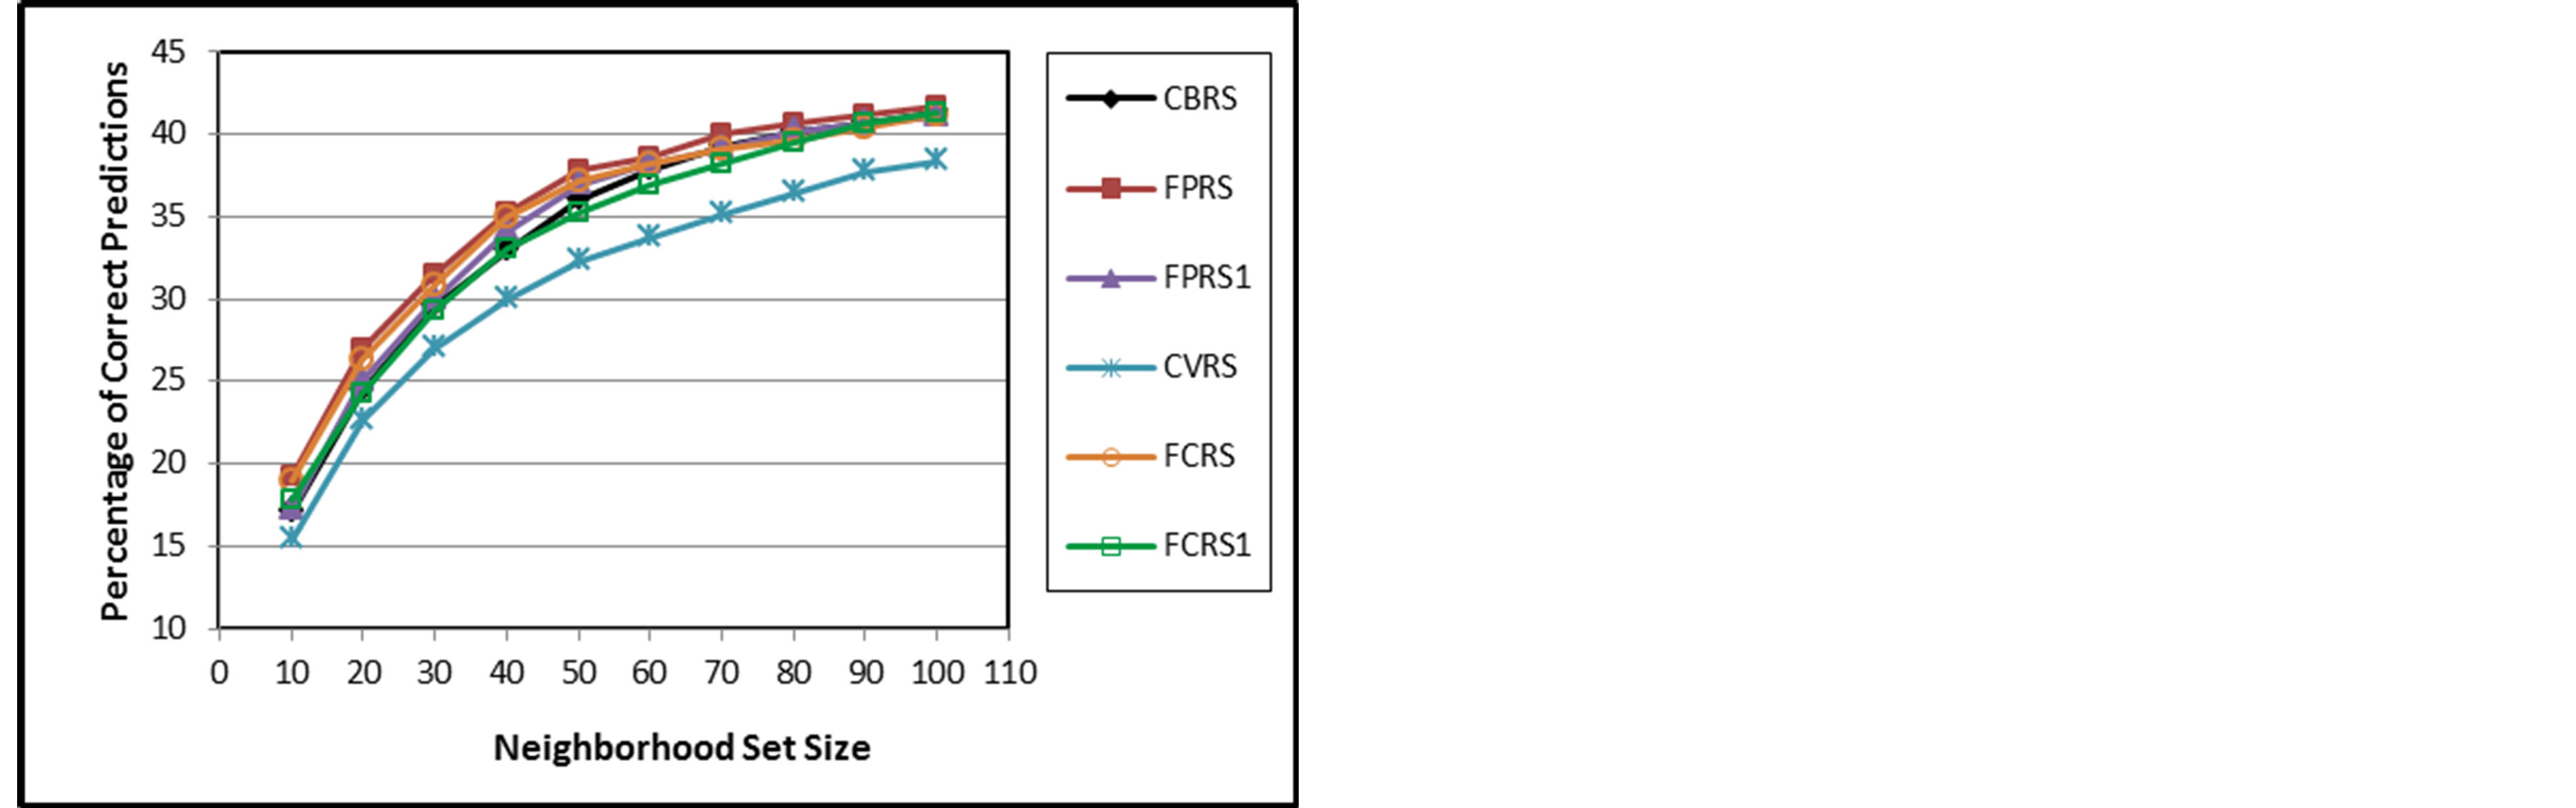 Fuzzy Weighted Similarity Measures For Memory Based Collaborative A B C Logic Diagram Figure 3 Pcp Of Cbrs Fprs Fprs1 Cvrs Fcrs And Fcrs1